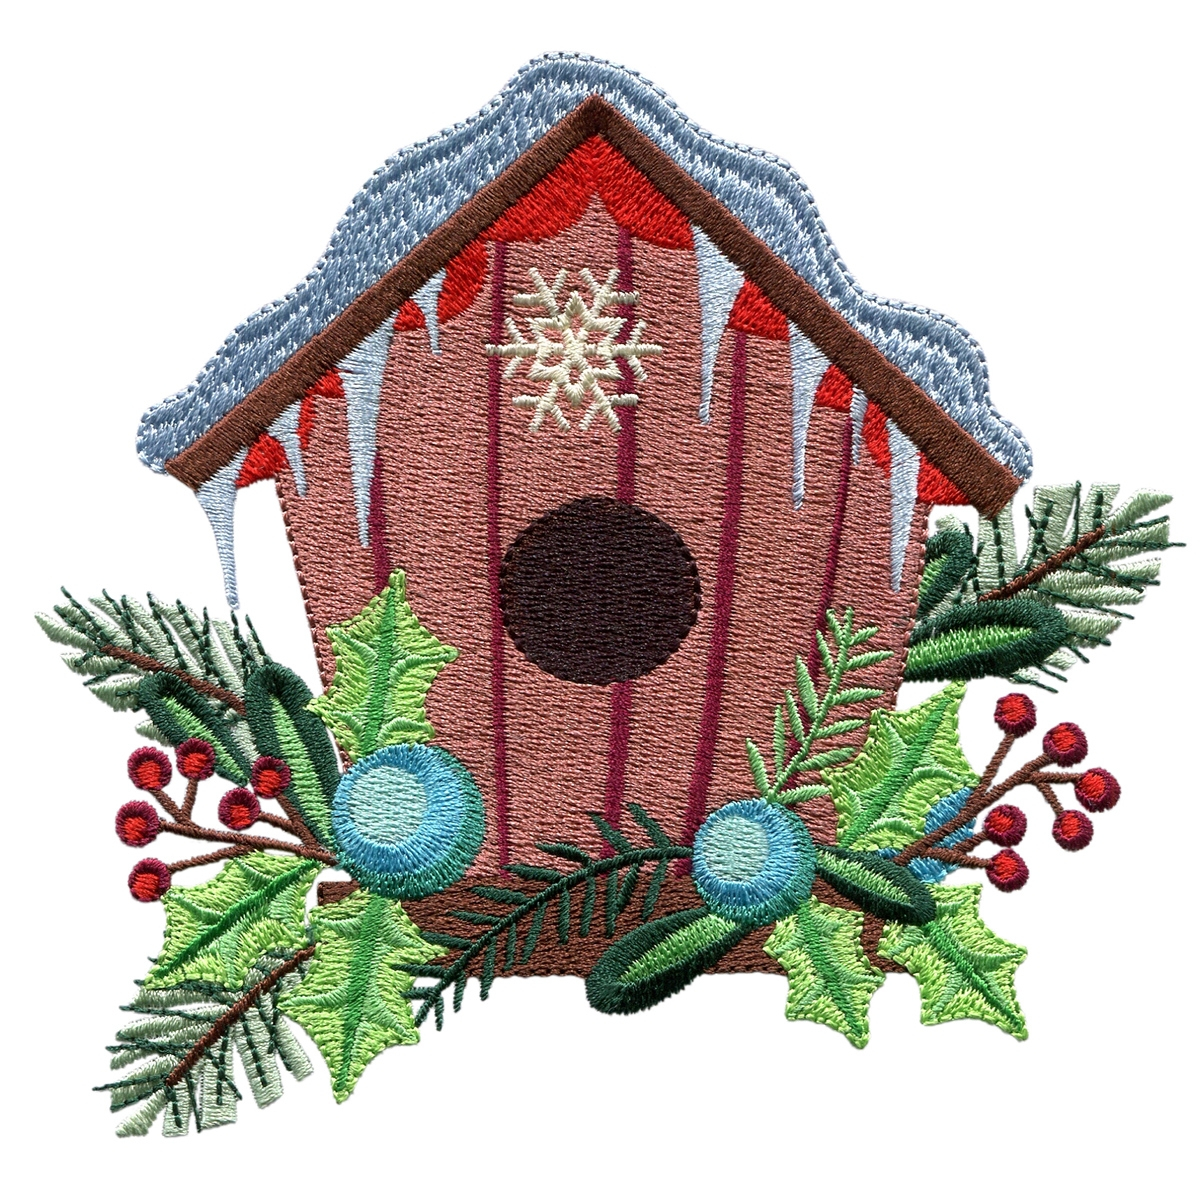 Bird Embroidery Pattern Birdhouse Winter Is For The Birds Embroidery Design